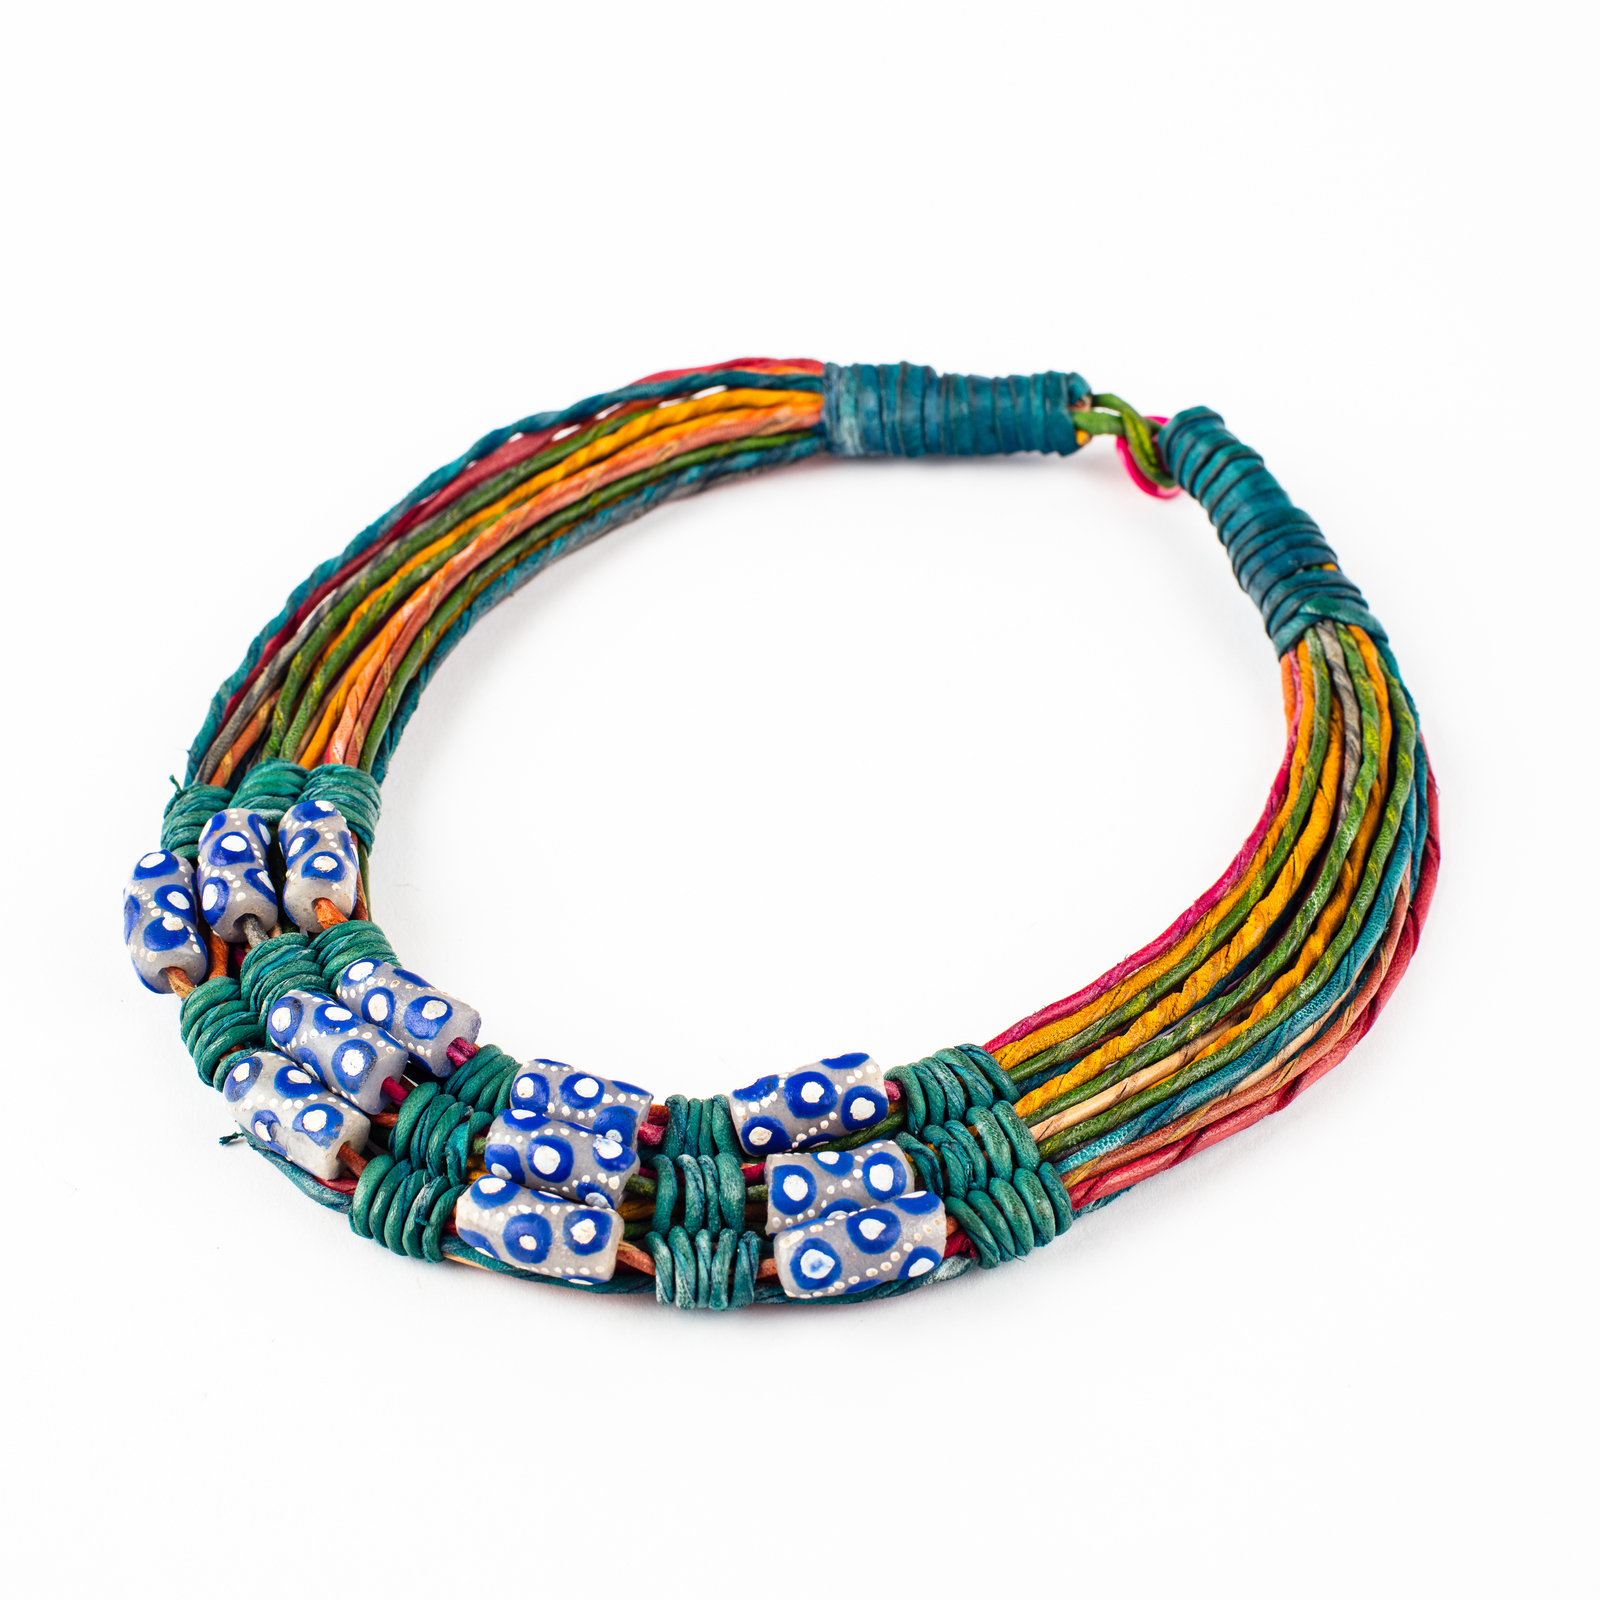 trade excavated antique dogon blue bead glass image beads dutch mali necklace cobalt products